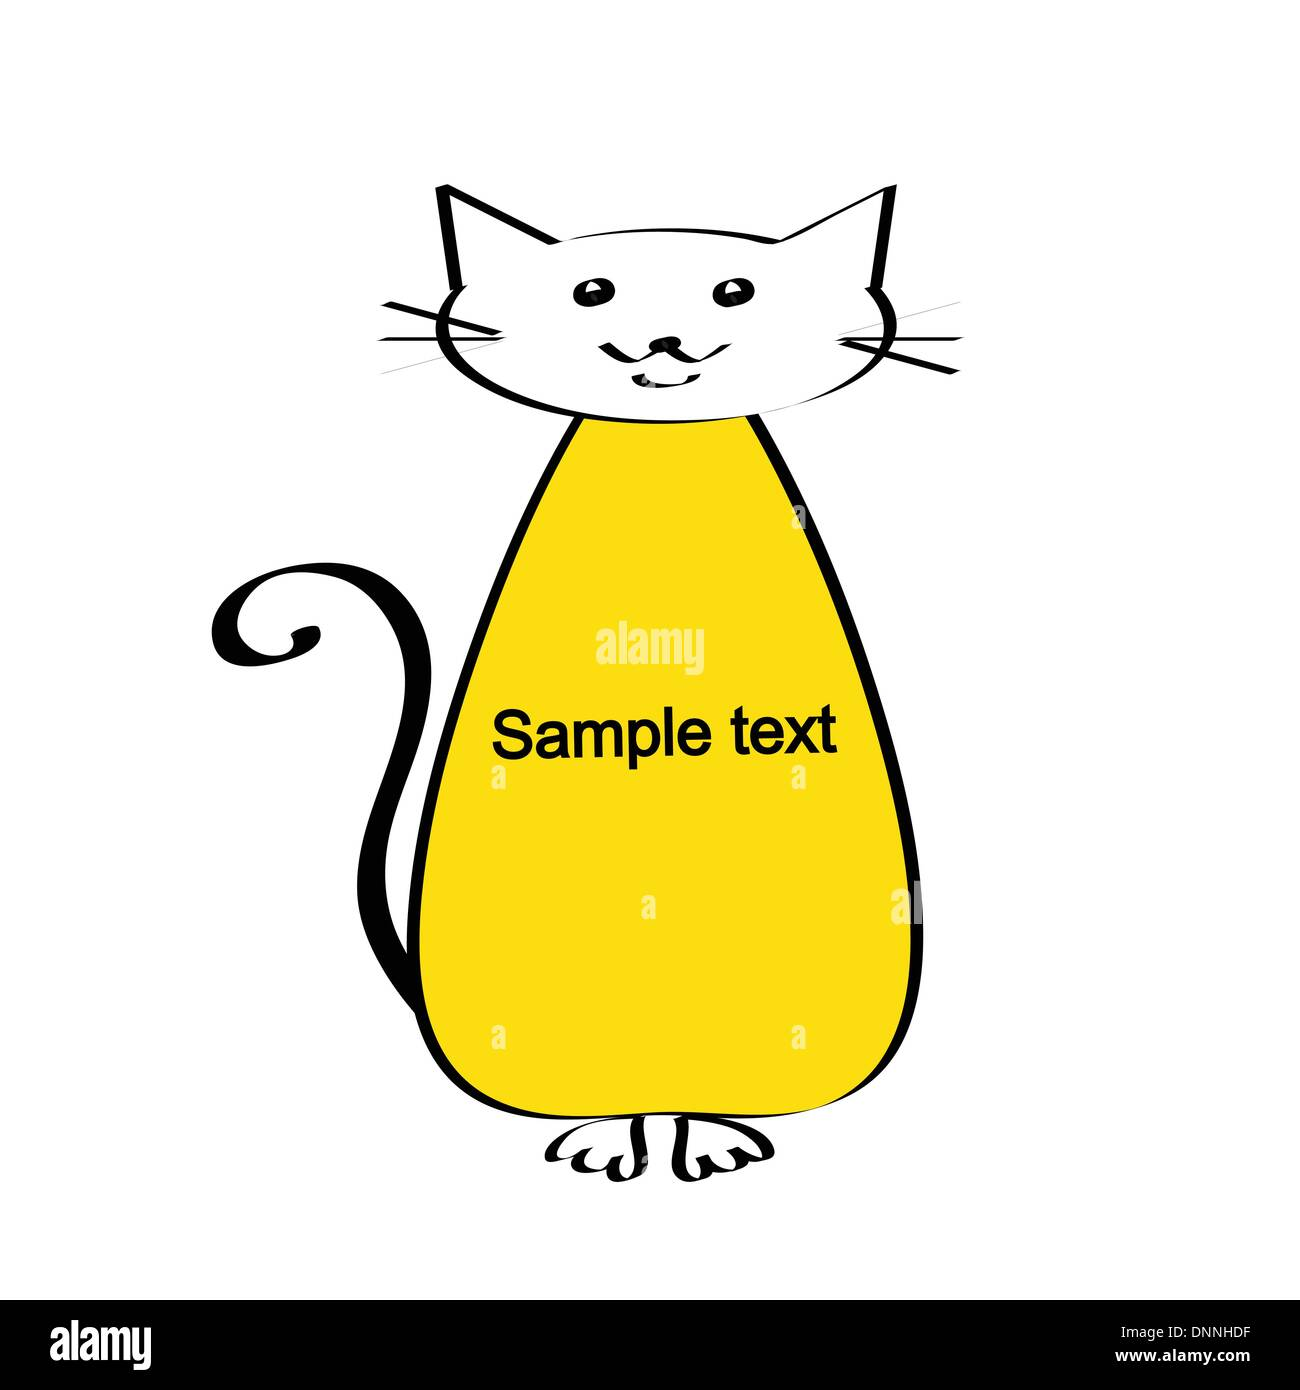 Cute and simple kids frame show cat - Stock Image